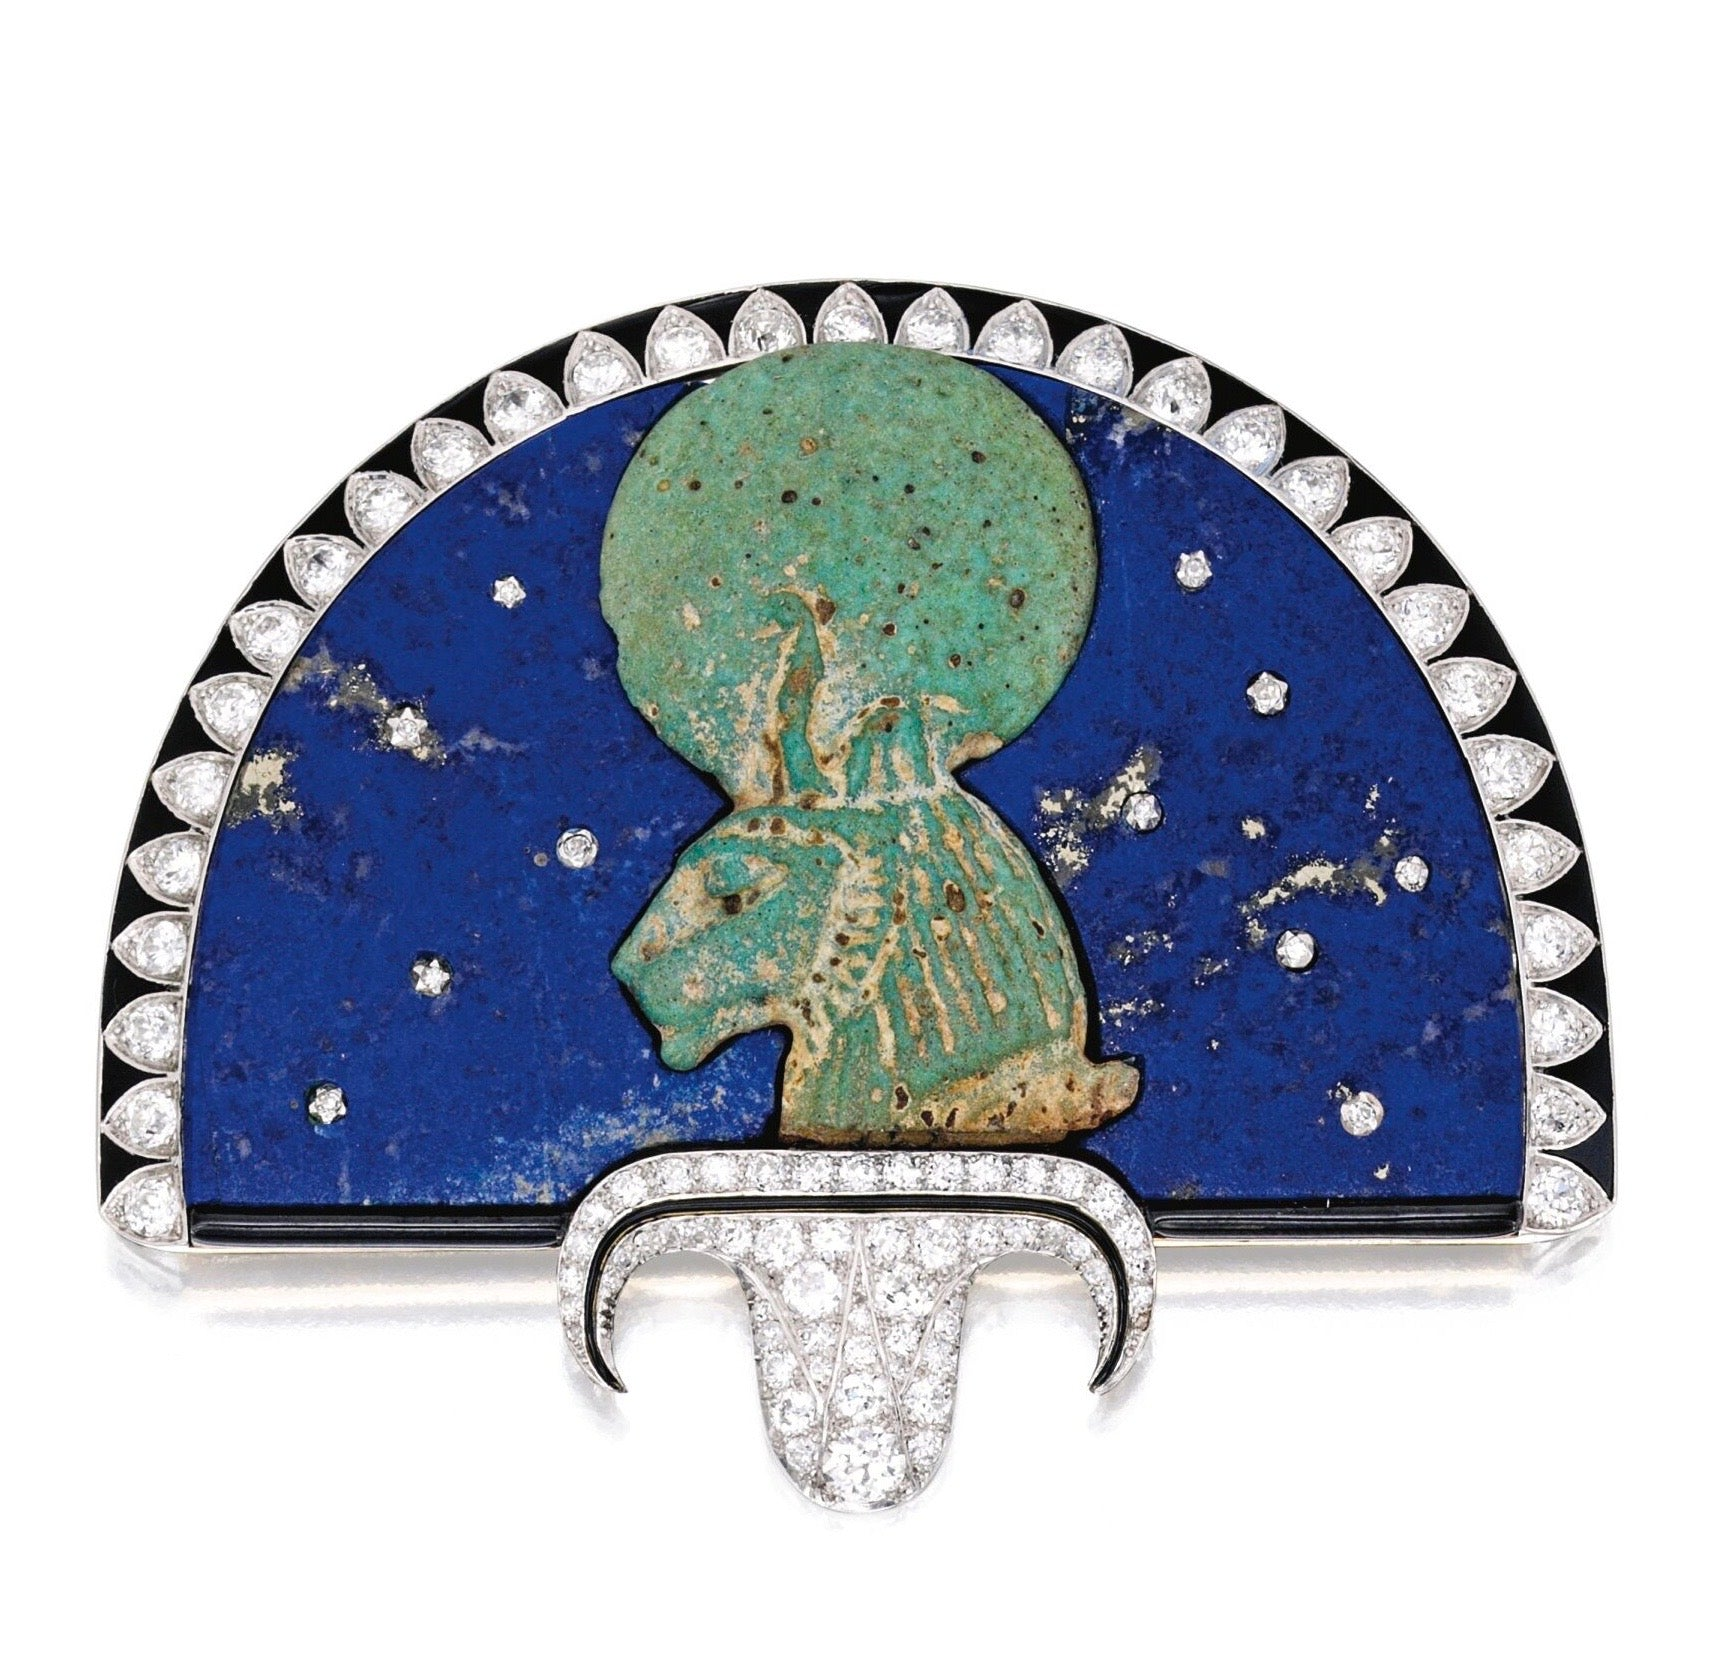 Rare Cartier Egyptian Revival Jewelled Brooch, c.1924